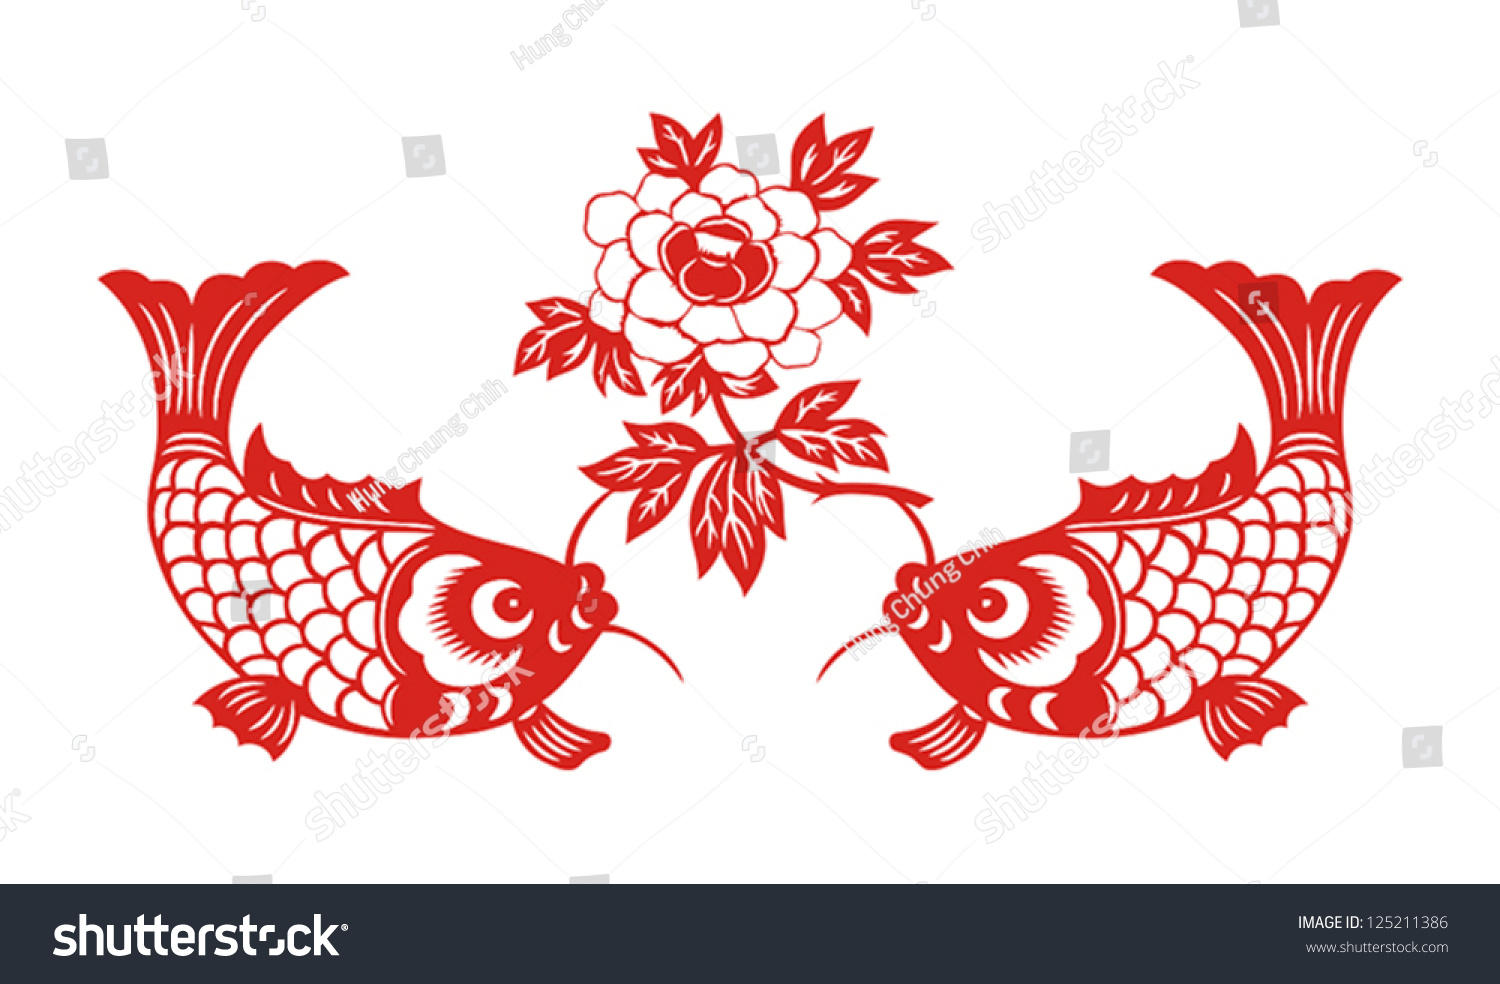 Royalty free auspicious double fish symbol for 125211386 stock auspicious double fish symbol for chinese new year spring festival 125211386 buycottarizona Gallery